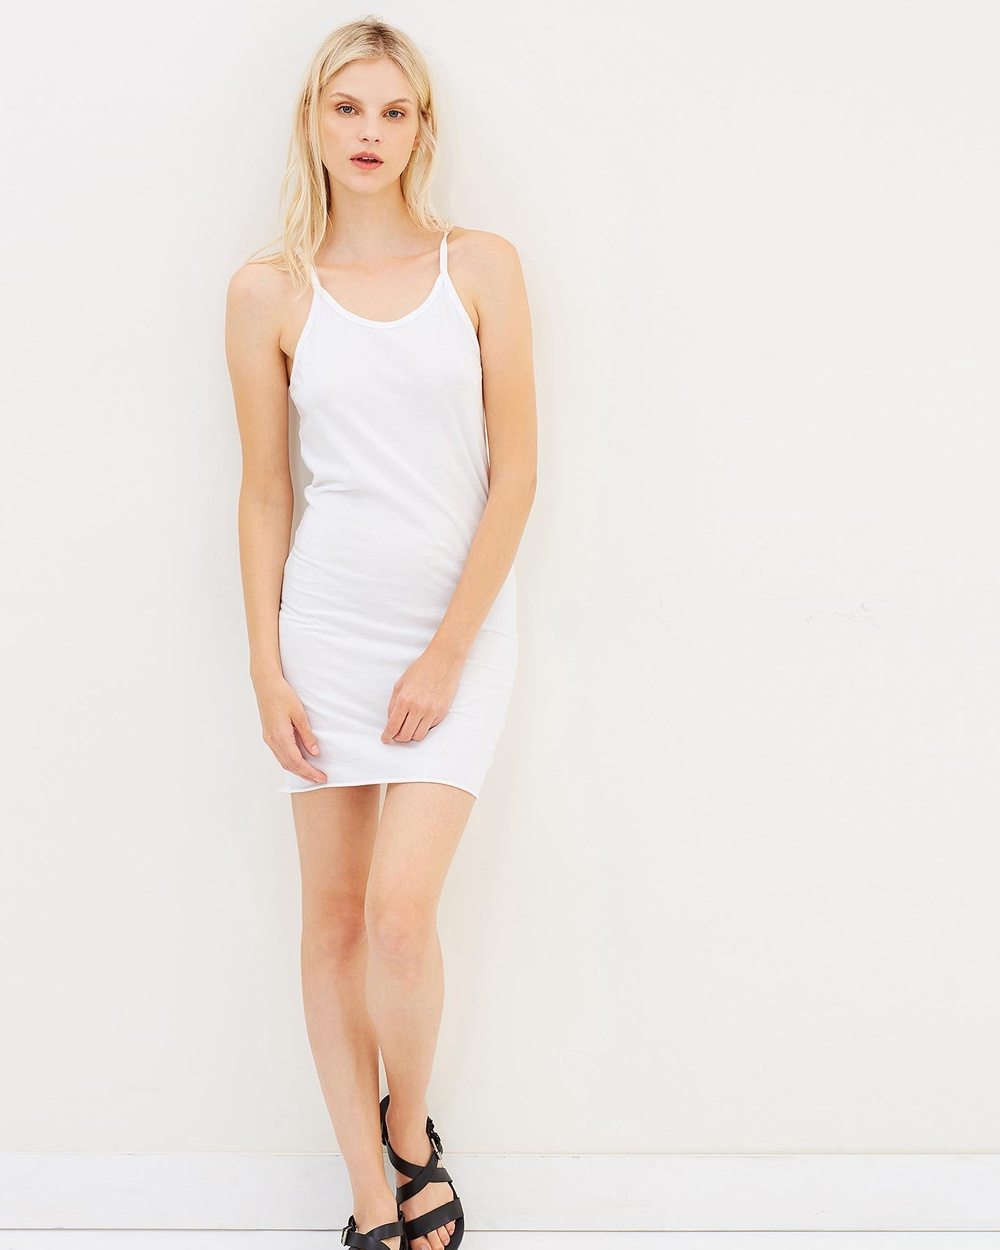 Surrounded By Ghosts The Annite Singlet Dress Dresses White The Annite Singlet Dress